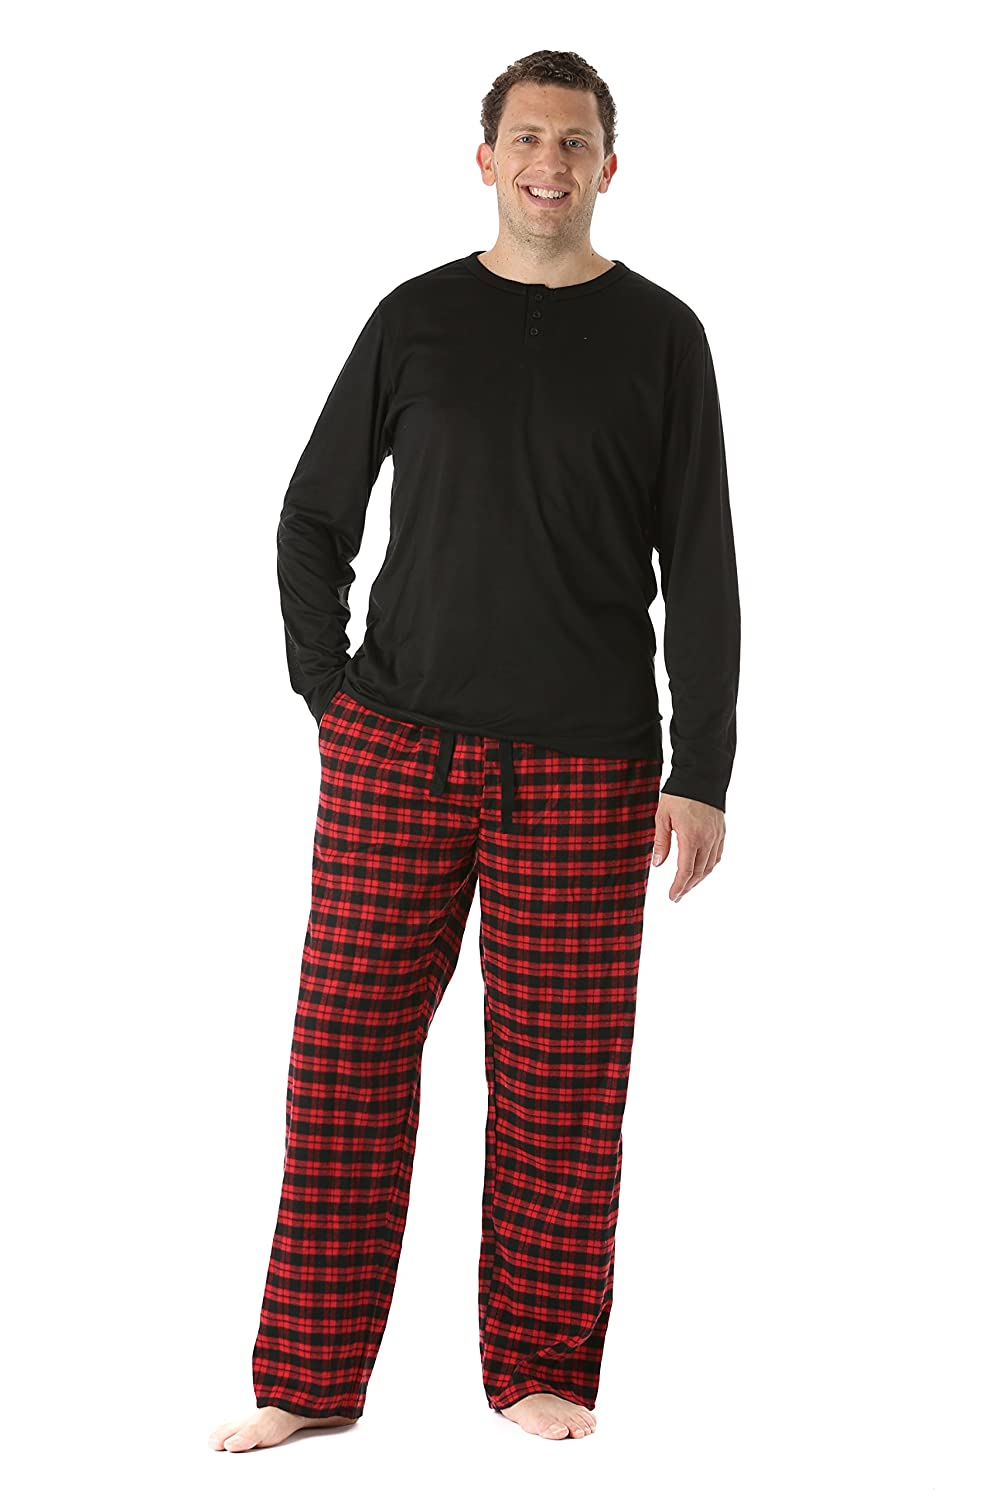 EXPERIENCE EXTRA COMFORT  This 2-piece flannel men s pajama set is the  ultimate lounge and sleep outfit to ensure your comfort all night day long. a24577588